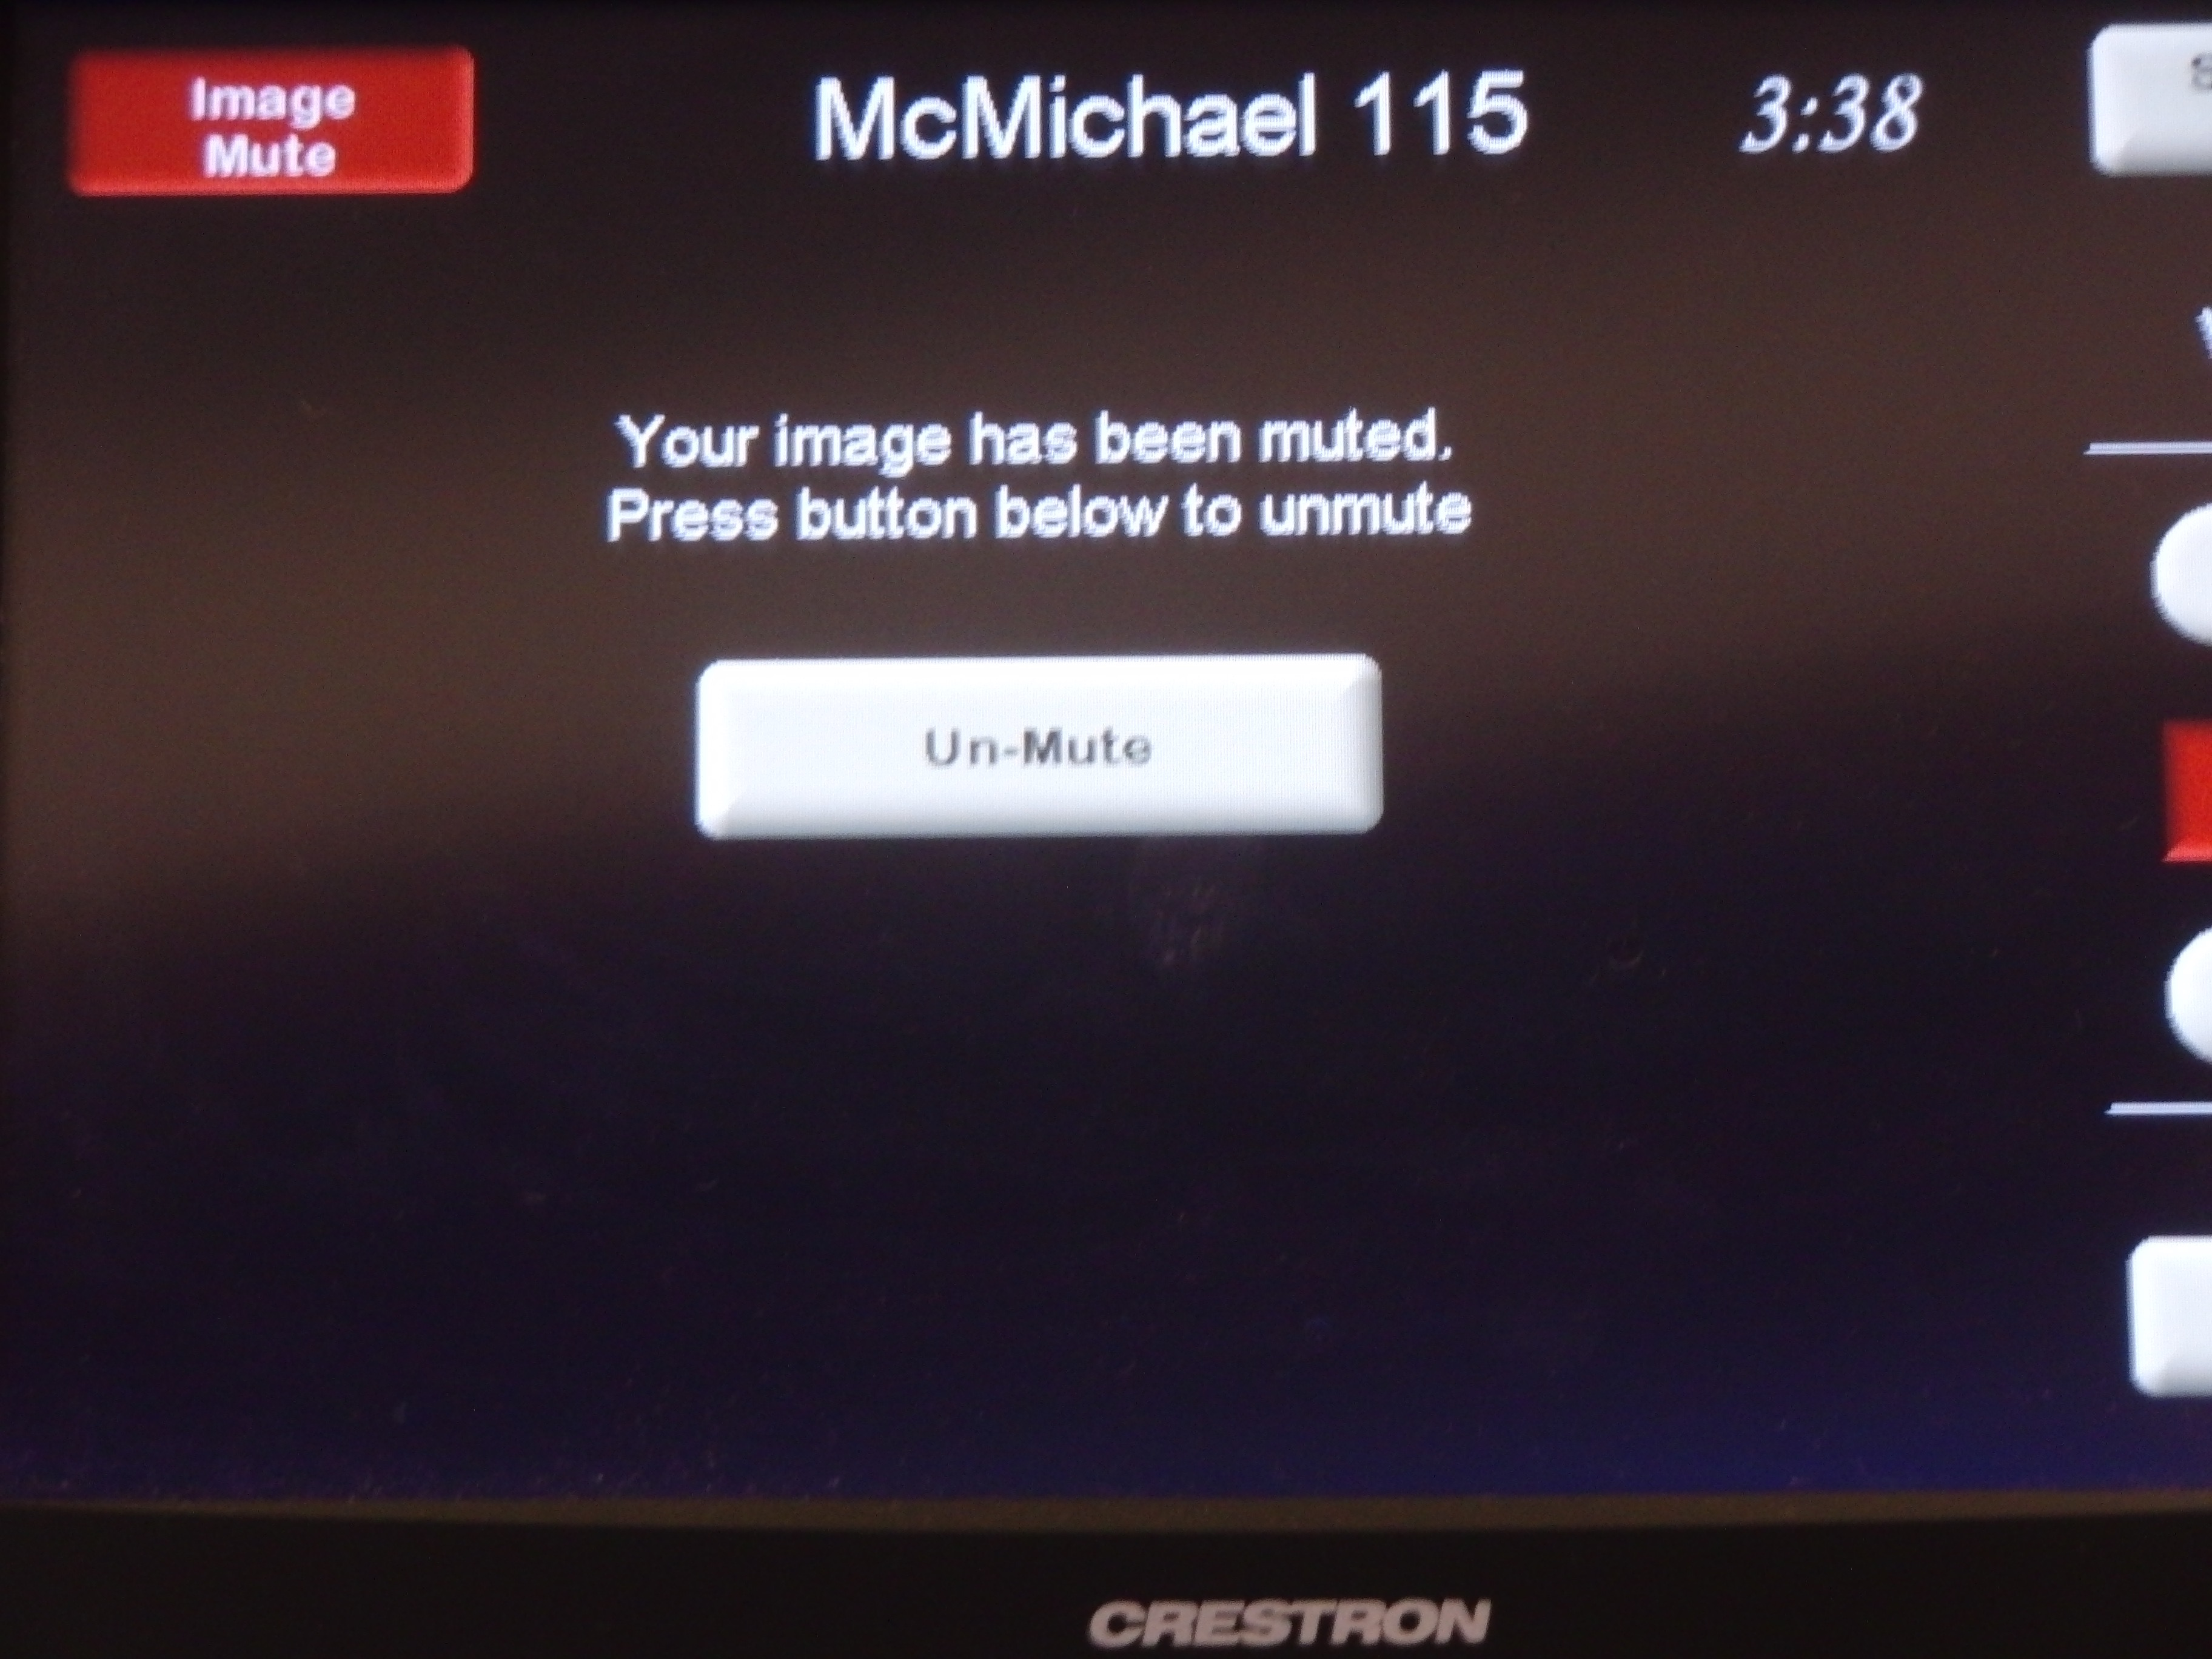 Photo of crestron control touch panel showing the option to un-mute the screen